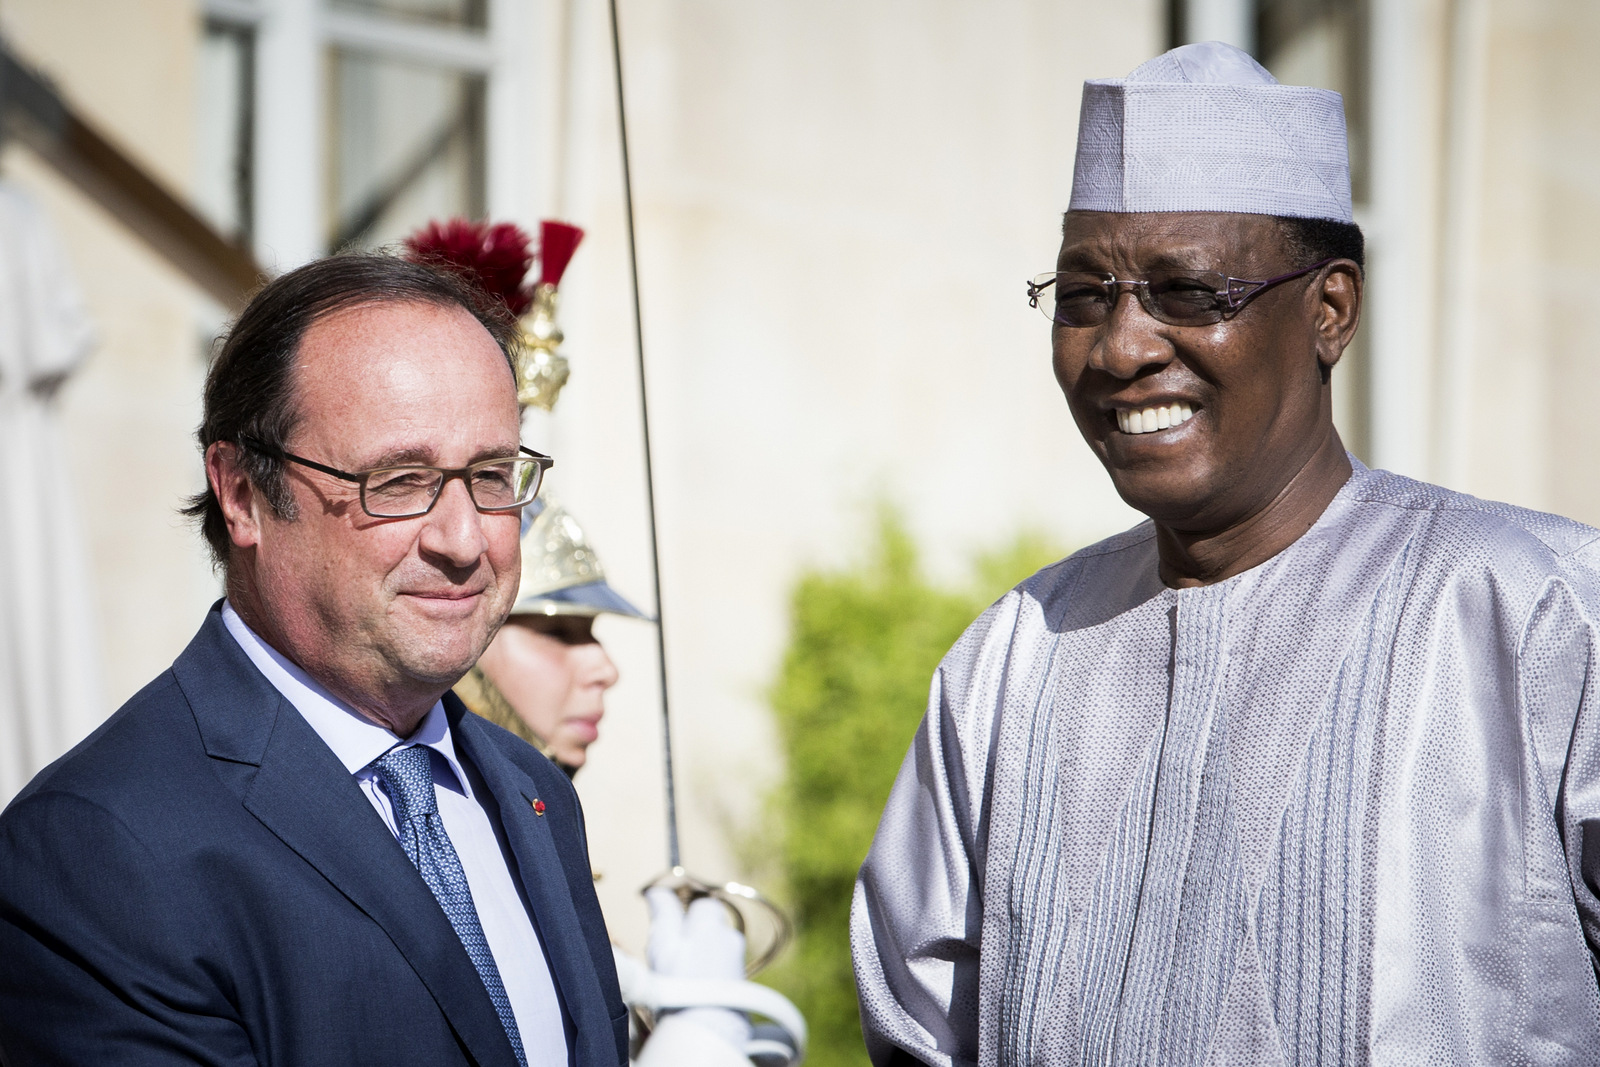 French President Francois Hollande, left, welcomes Chad President Idriss Deby Itno, prior to a meeting at the Elysee Palace in Paris, Saturday, Aug. 20, 2016. (AP/Kamil Zihnioglu)